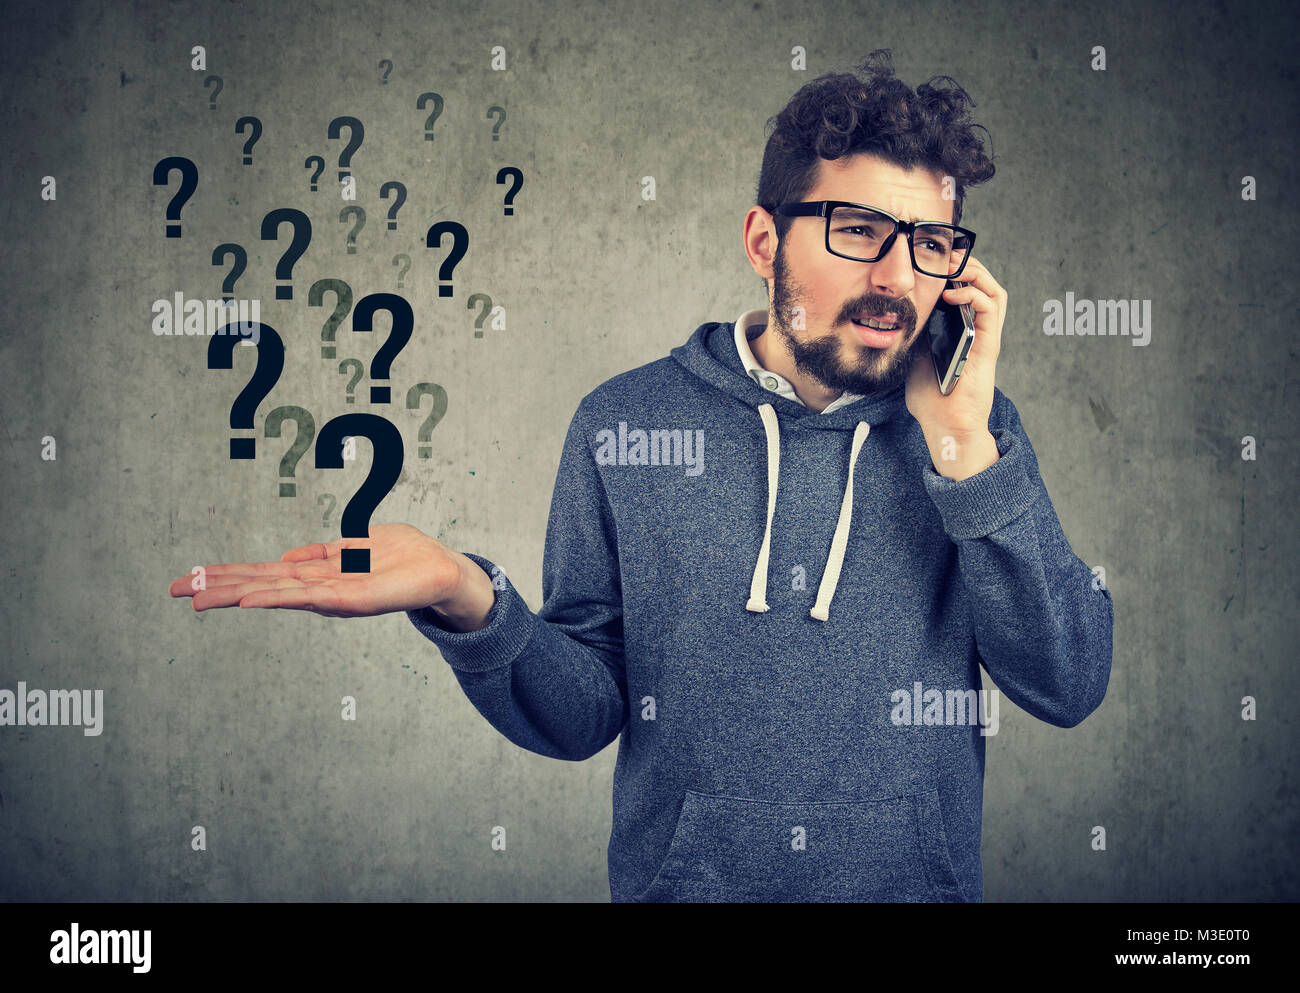 Young bearded man talking on smartphone in misunderstanding on gray background. - Stock Image